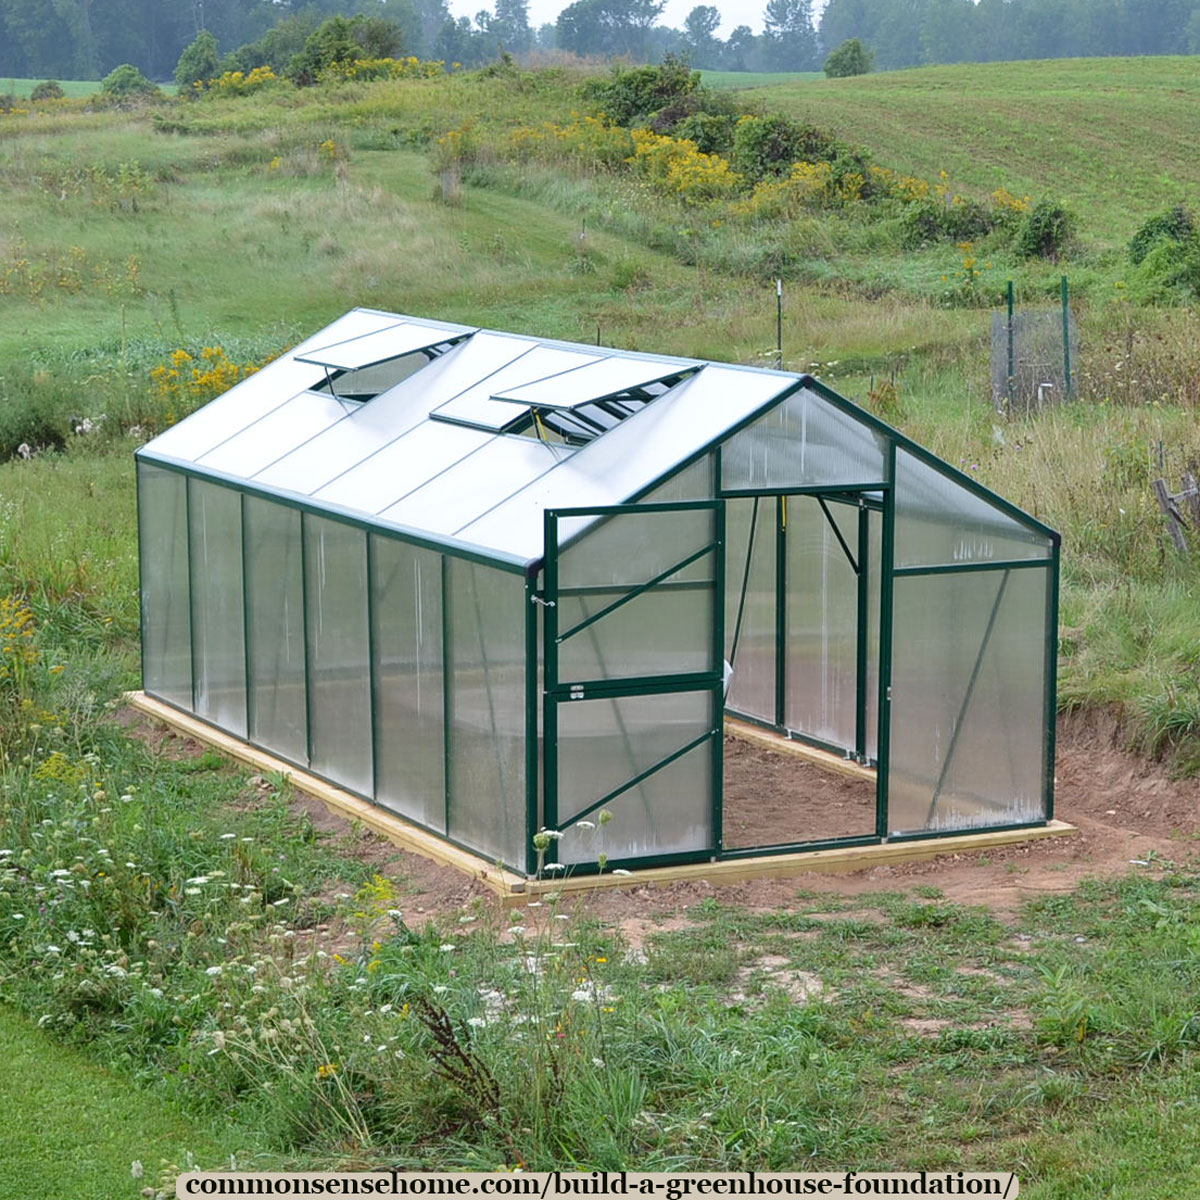 home greenhouse with foundation that allows you to plant directly in the soil